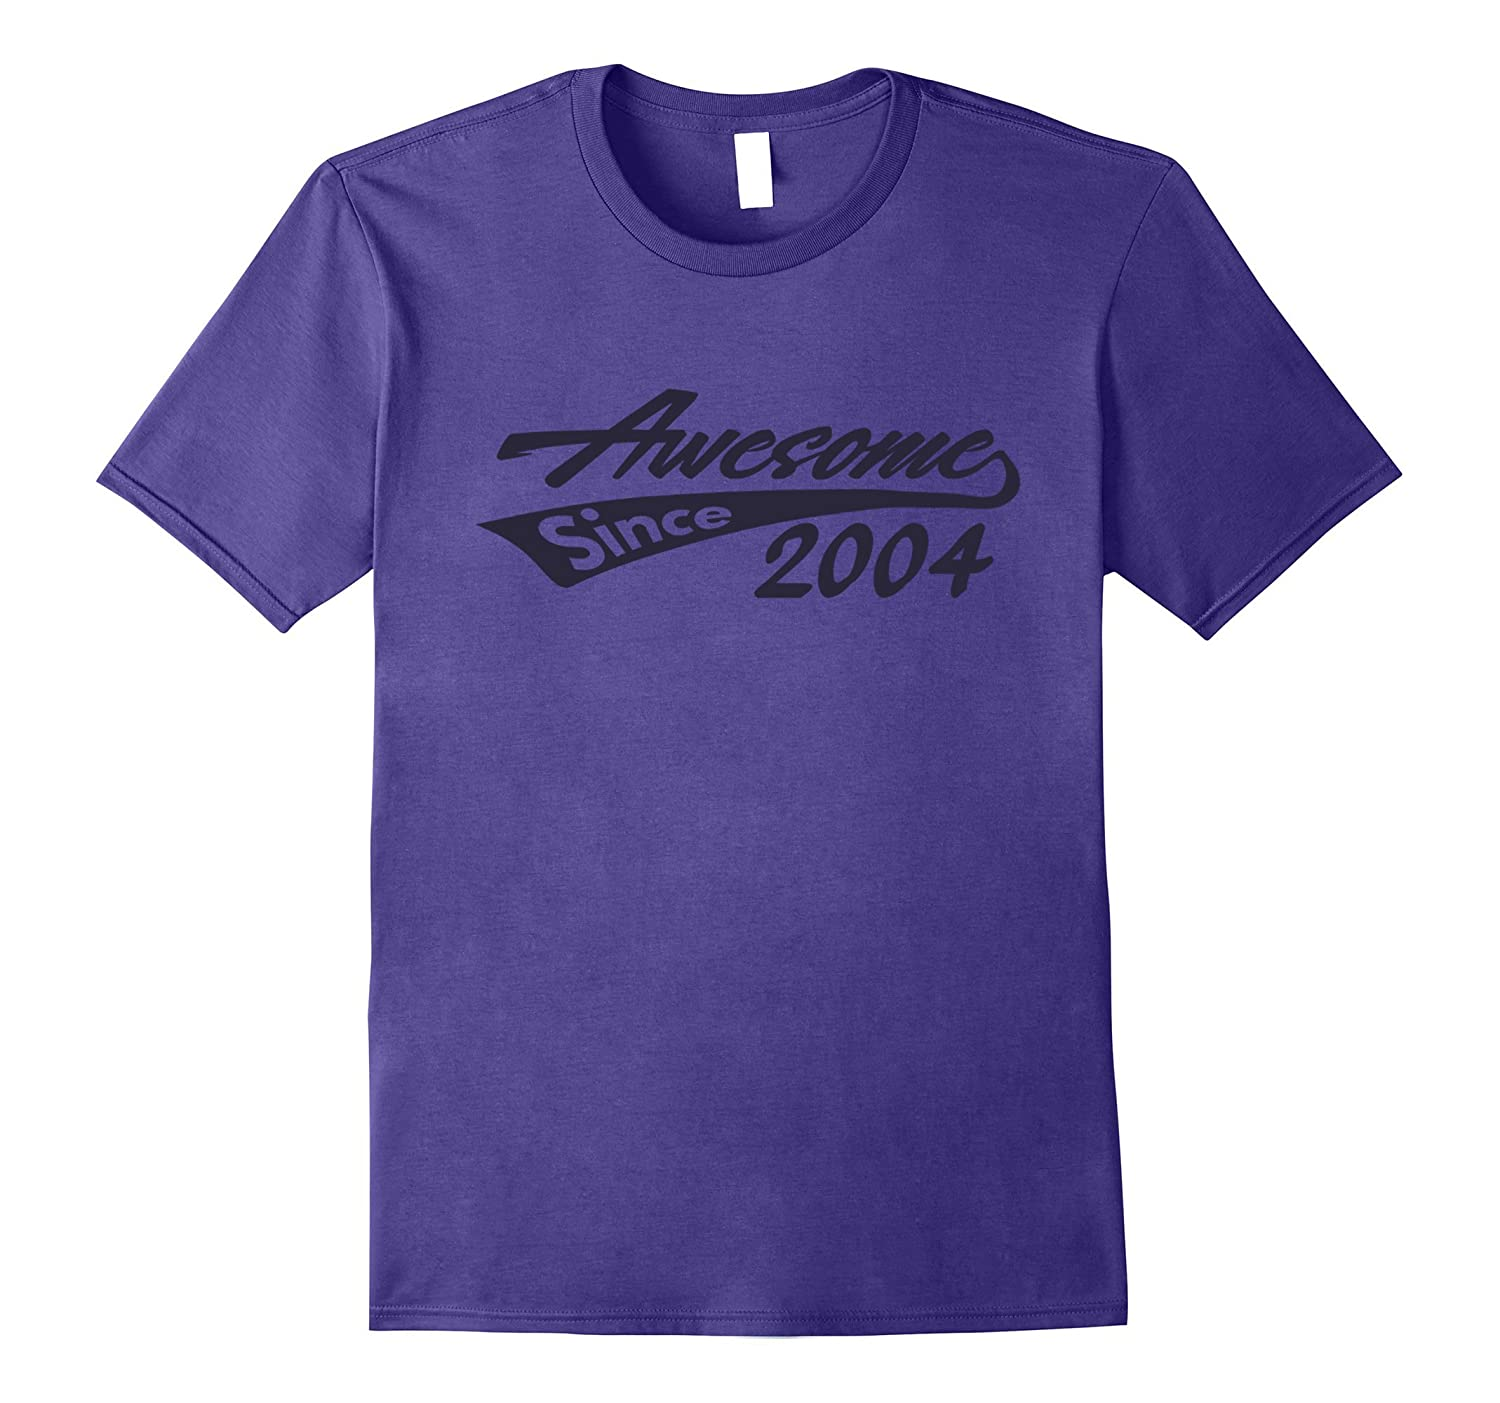 Awesome Since 2004 T-shirt Cool Luxury Fashion Top Tee-4LVS